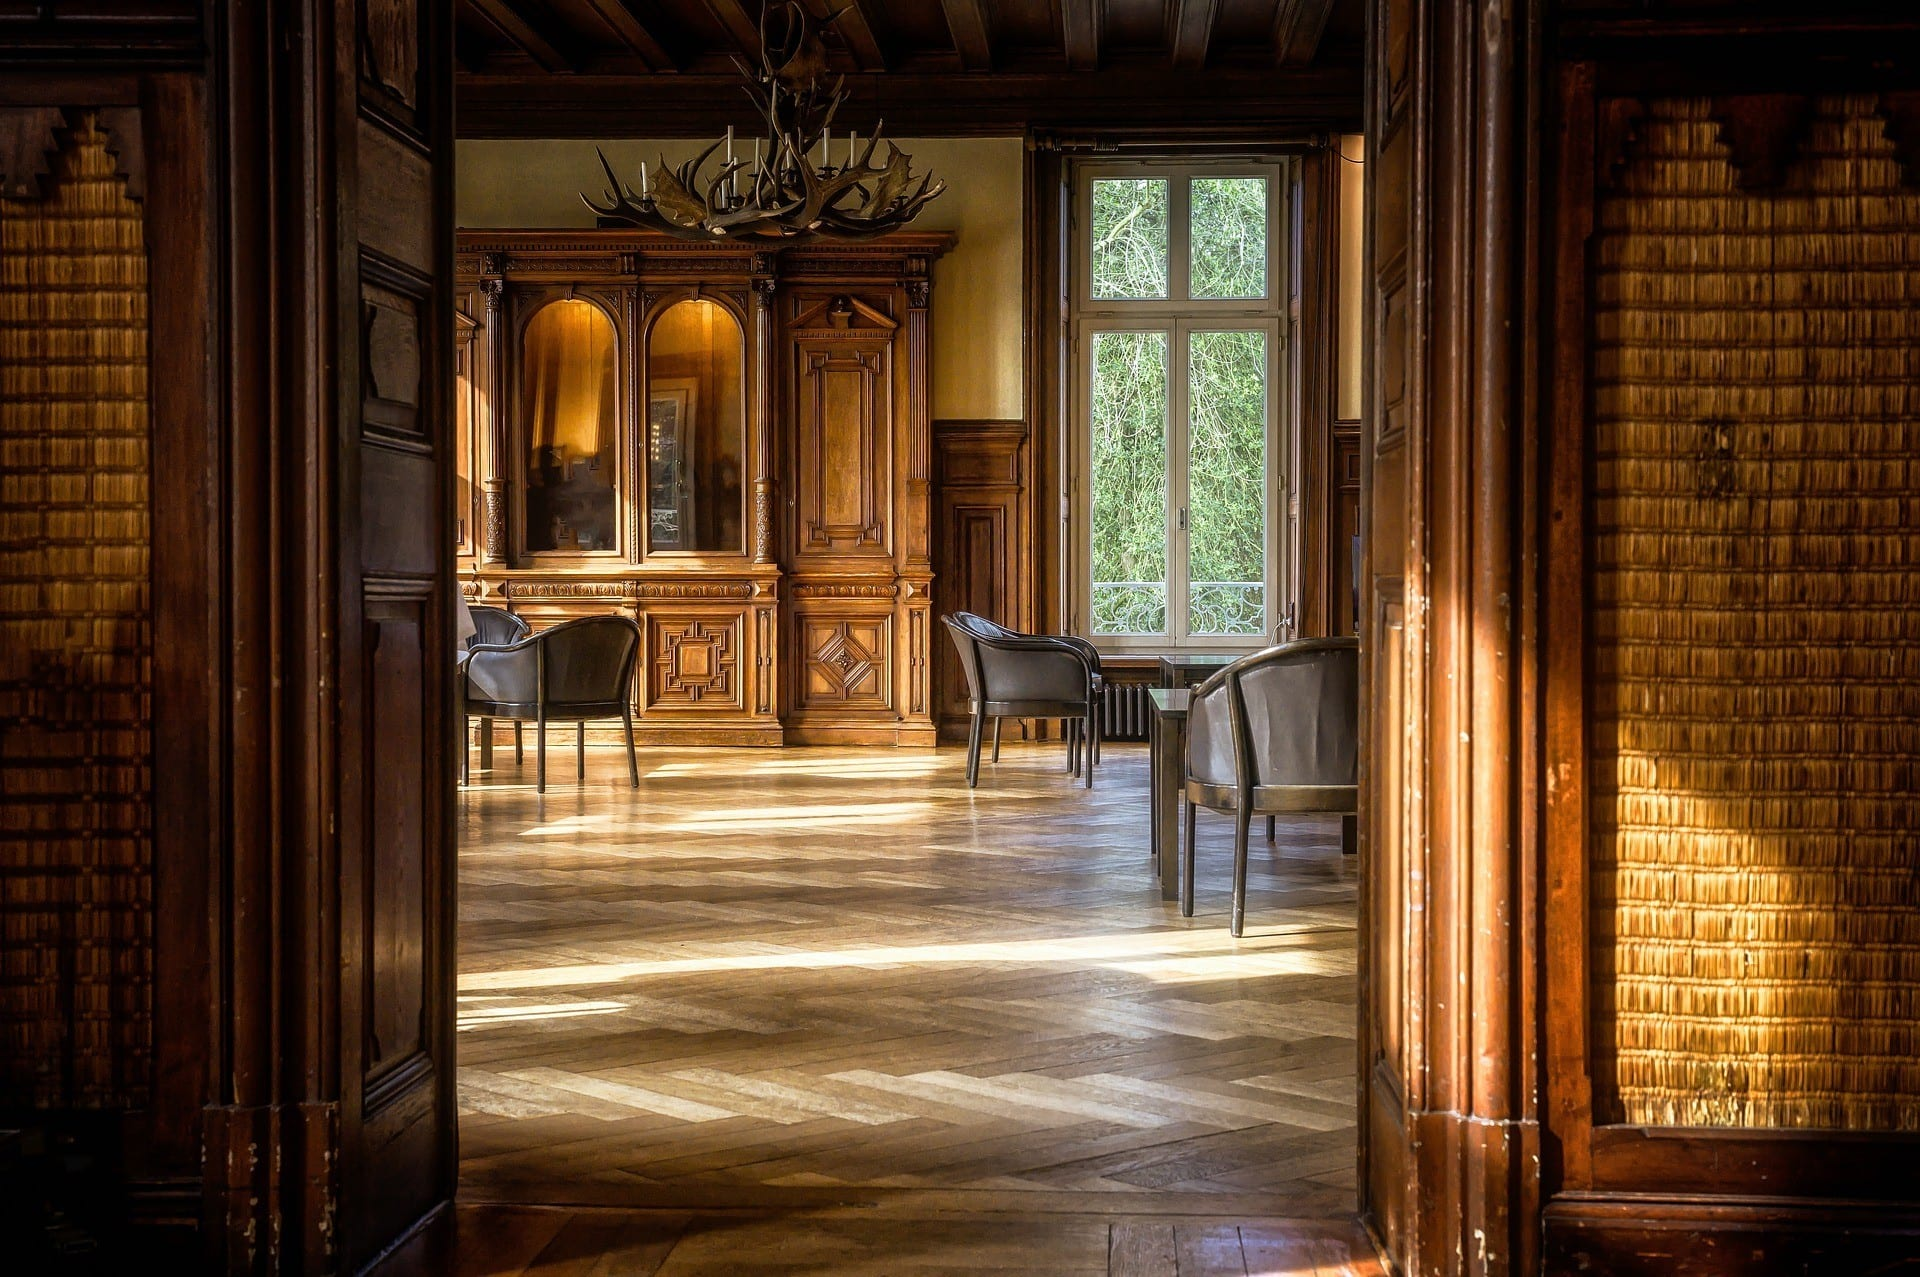 How To Make Wood Floor Shine Without Wax